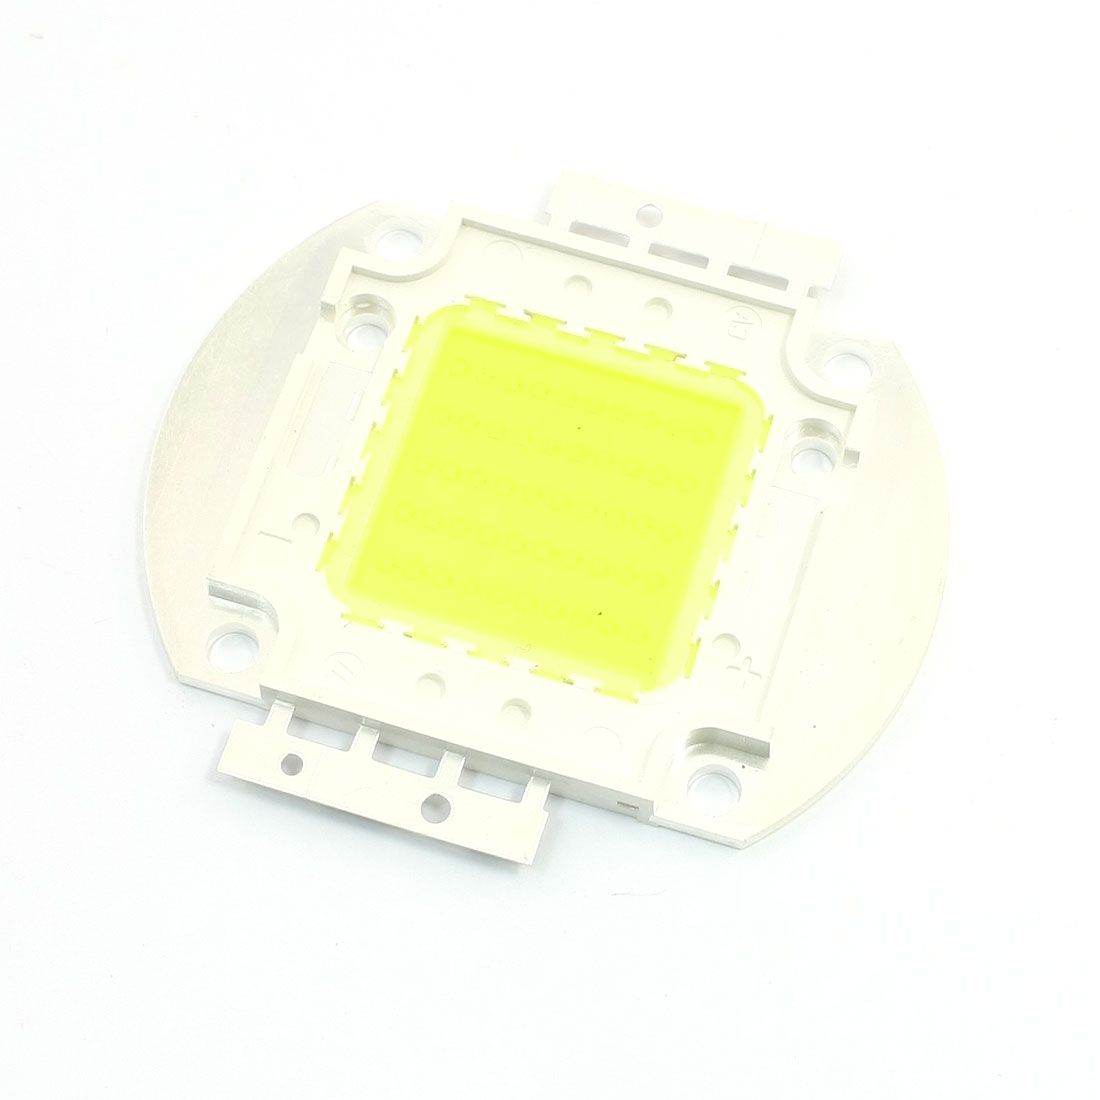 10E45CY DC 32-34V 1700mA 4500-5000LM 3000-3500K 50W Watt White Lighting Lamp Light Bulb SMD Chip LED Emitter